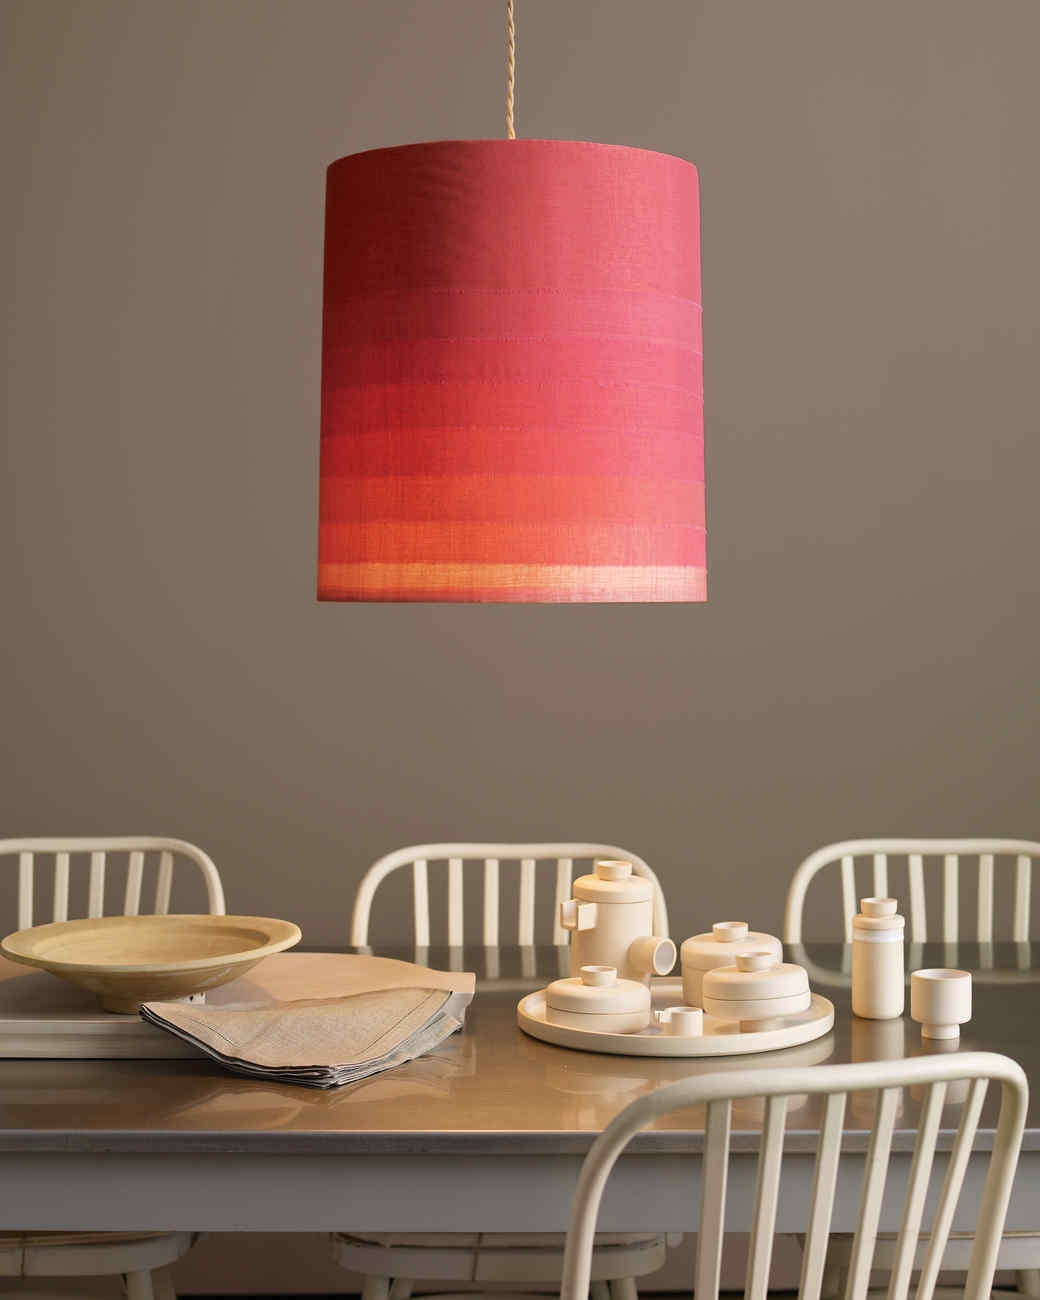 DIY ombre red fabric lampshade for a pendant lamp